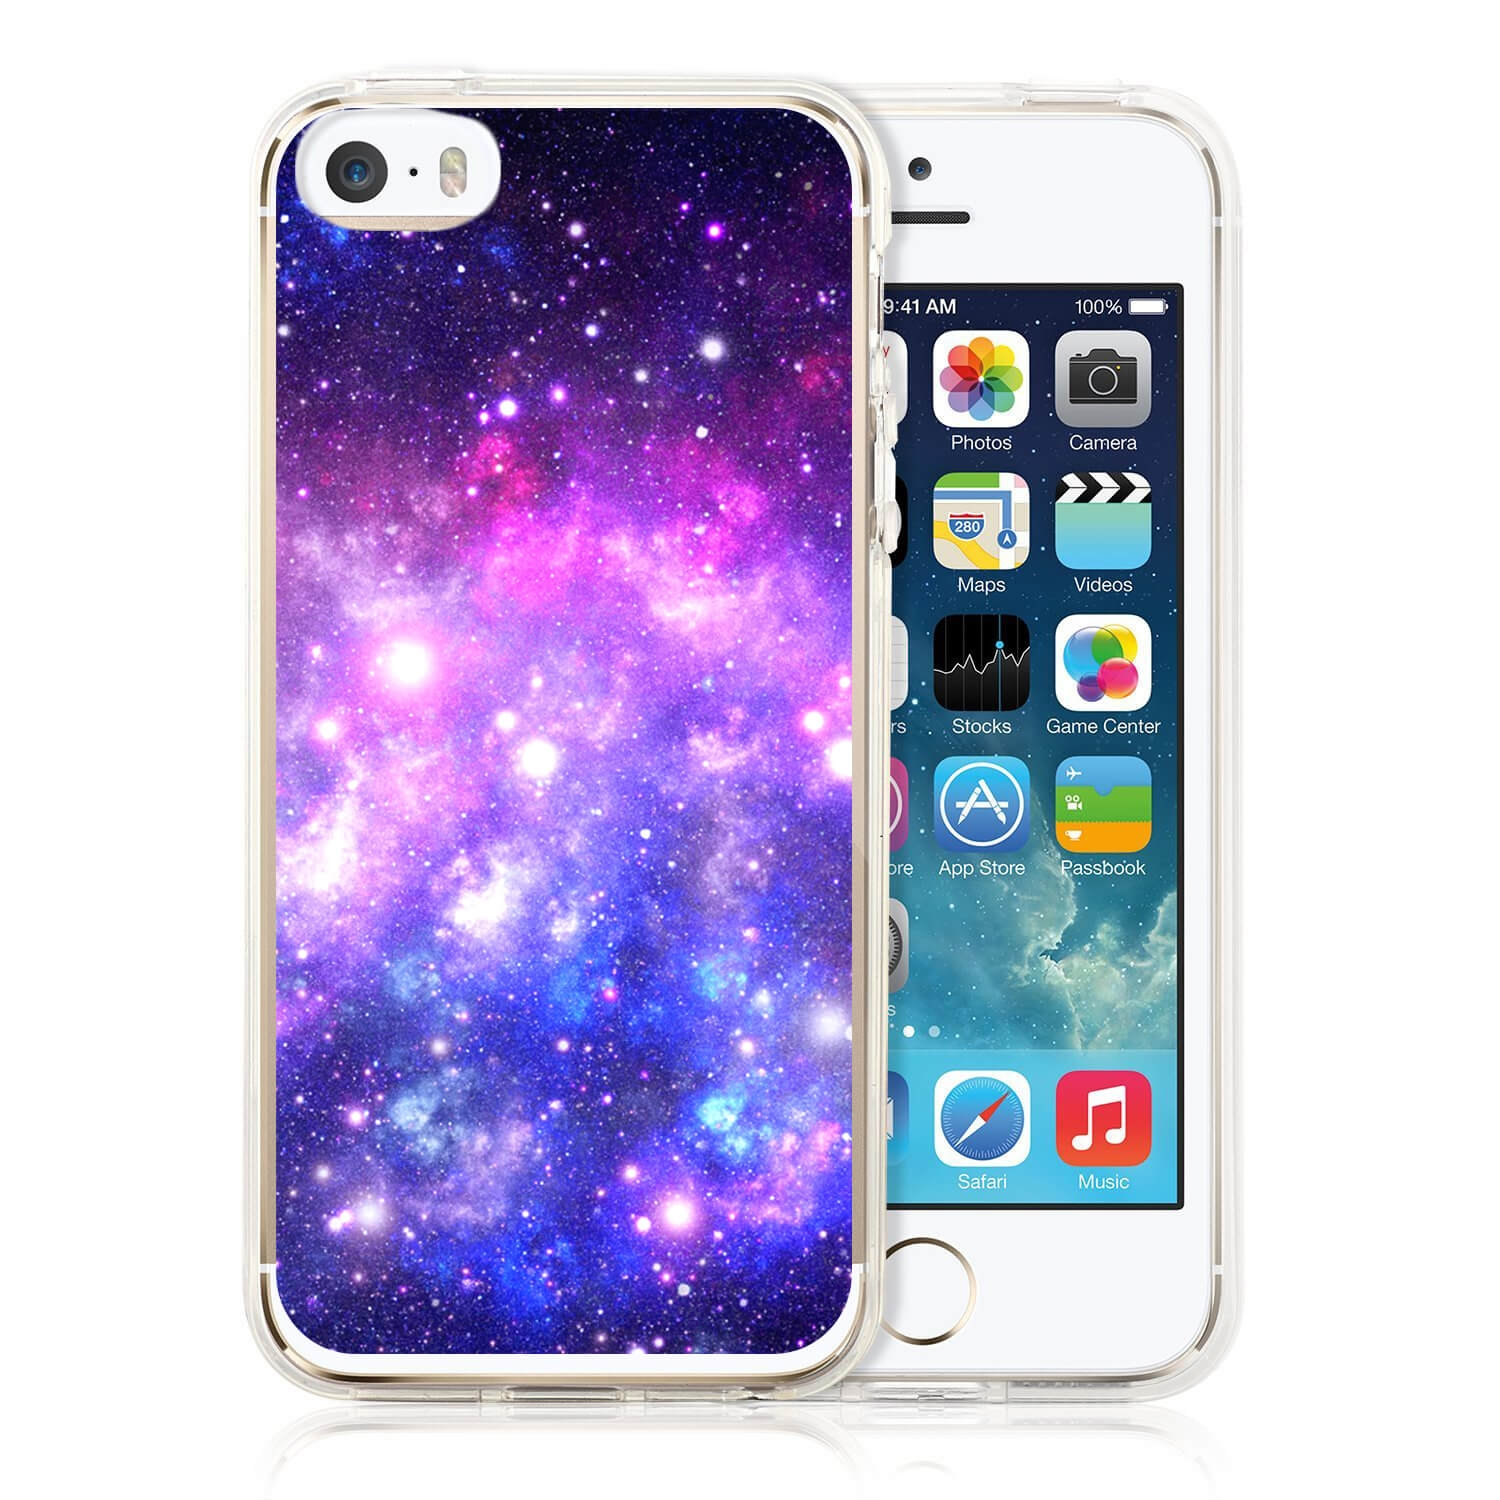 MY ART kryt Apple iPhone 5   5S   SE GALAXY (015) cf4e2b799bf